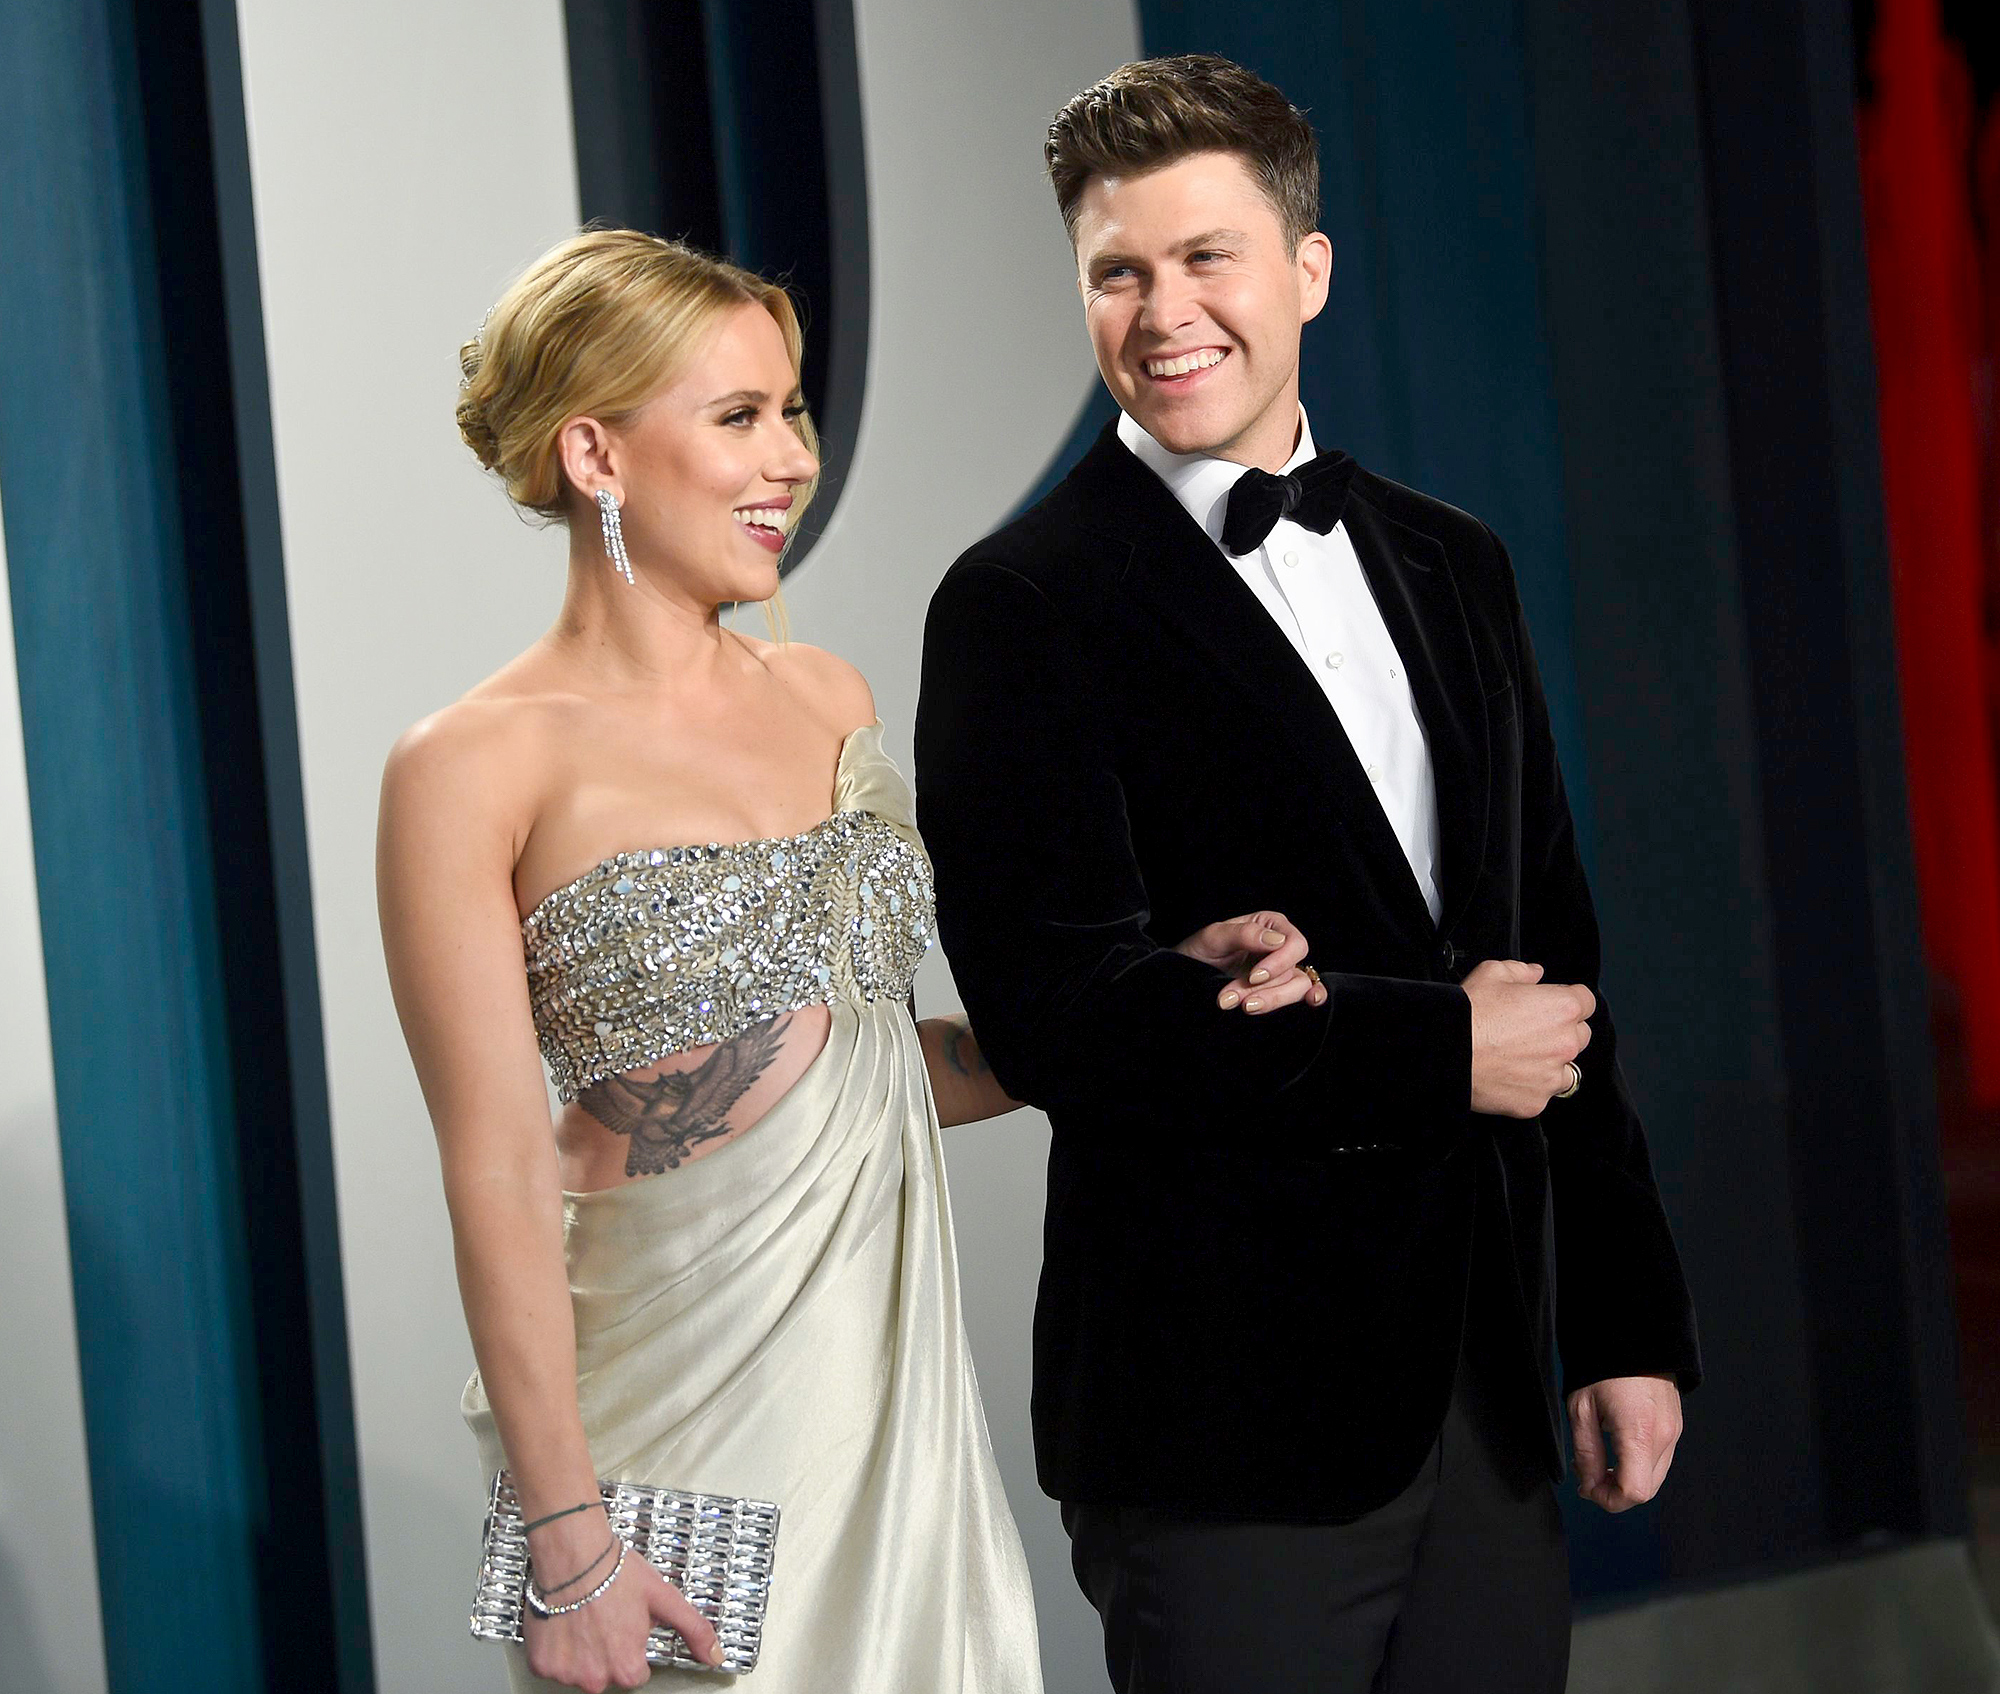 Colin Jost Blames Scarlett Johansson for Well-Placed Guitar on SNL